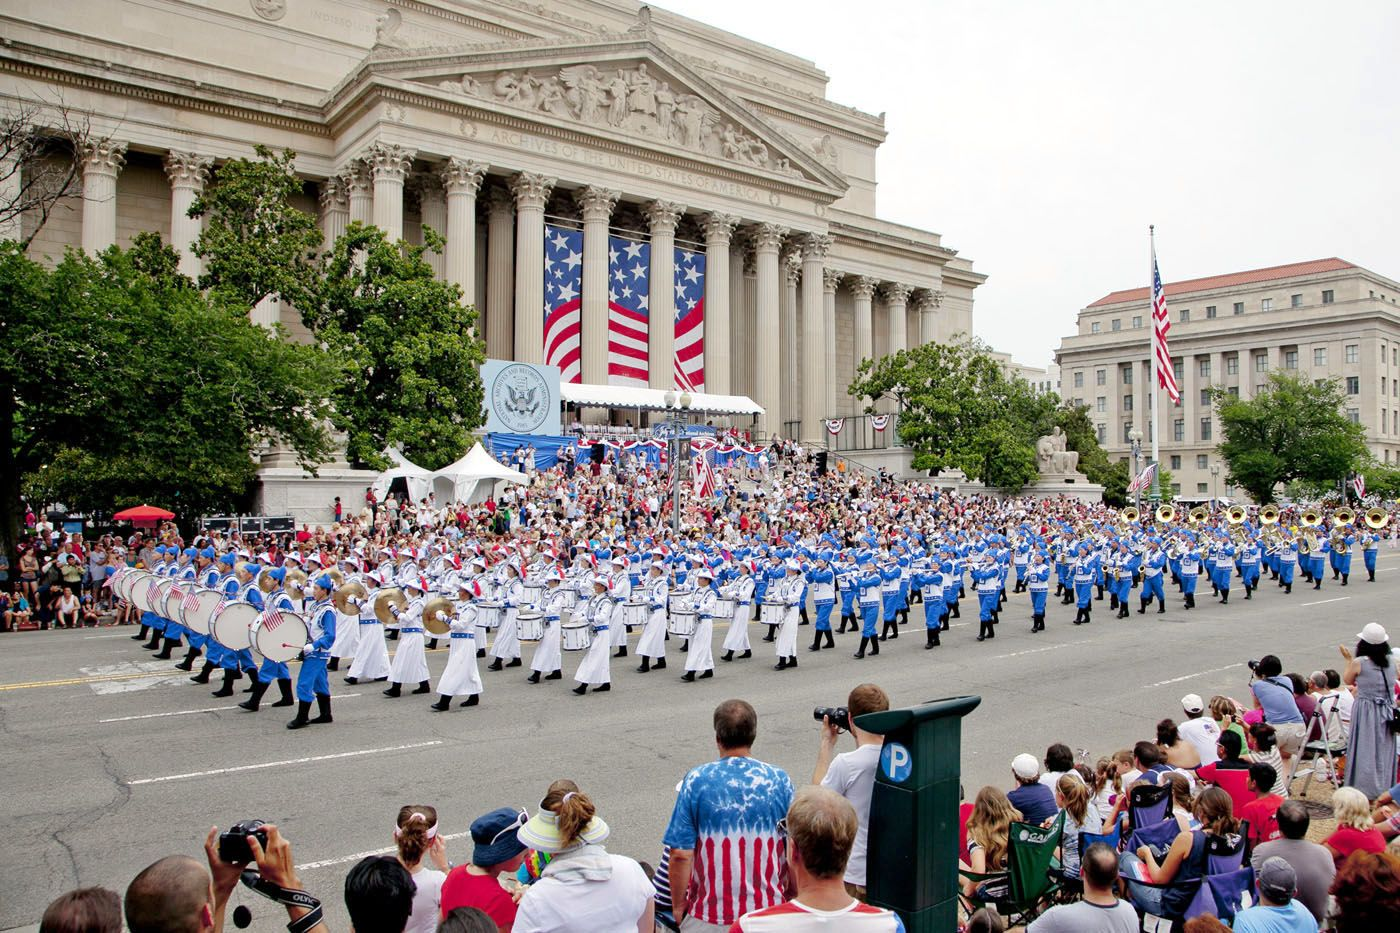 Let S Celebrate Independence Day Together On The 4th Of July Independenceday 4 Independence Day Parade Happy Independence Day Usa Independence Day History